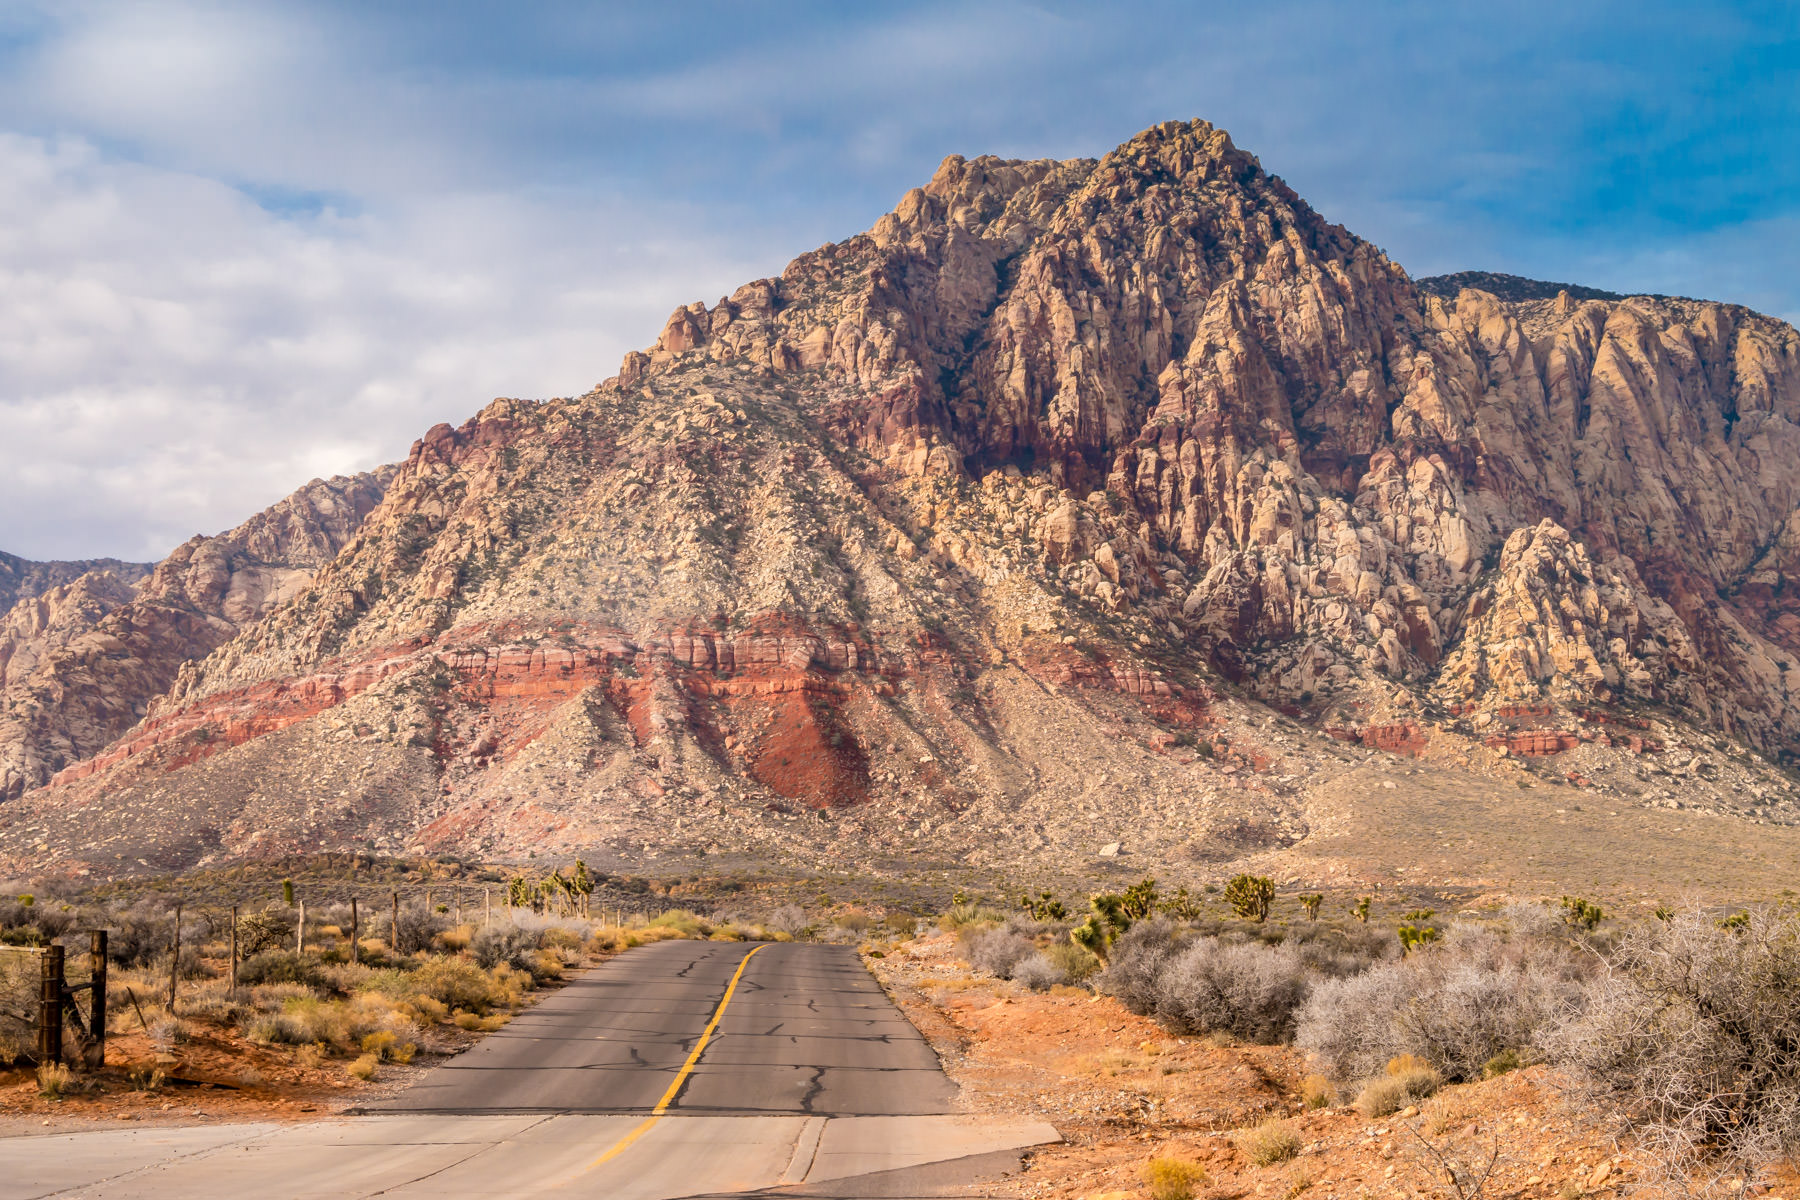 A desert road leads its way into Nevada's Spring Mountains at Spring Mountain Ranch.